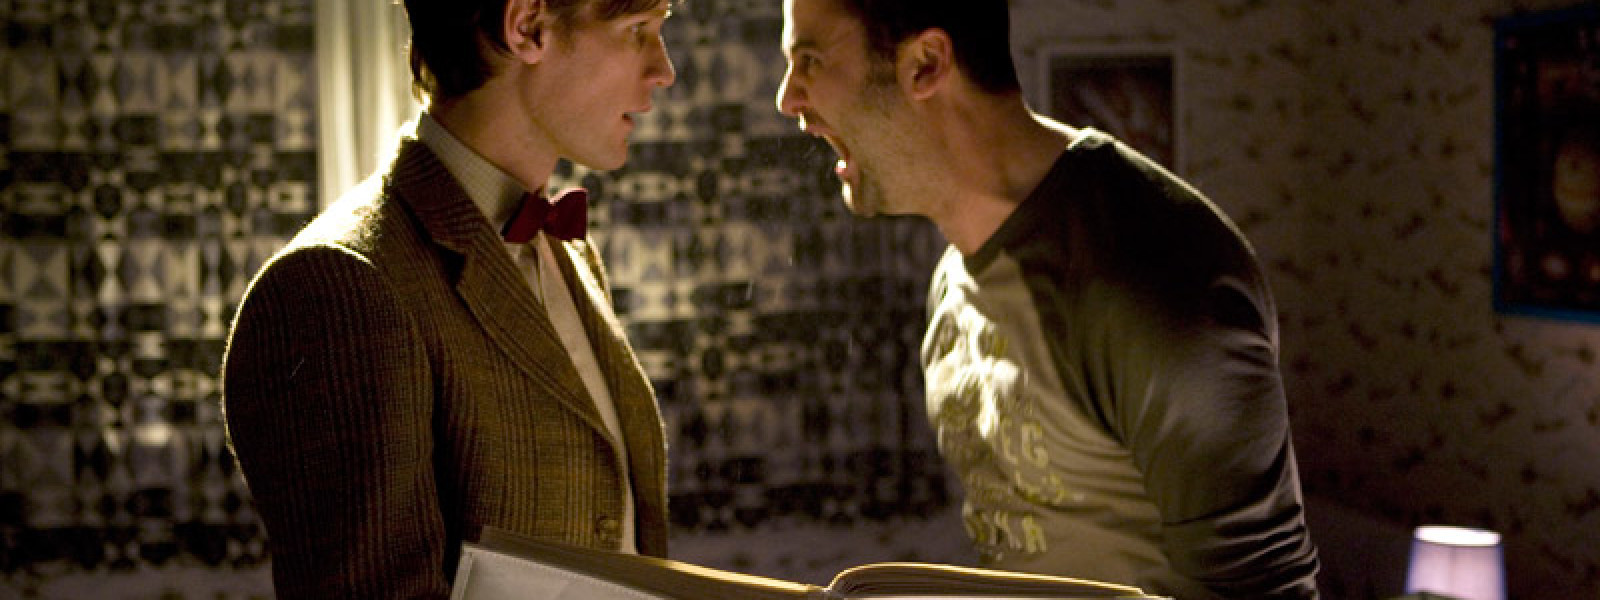 Alex screams beside the Doctor